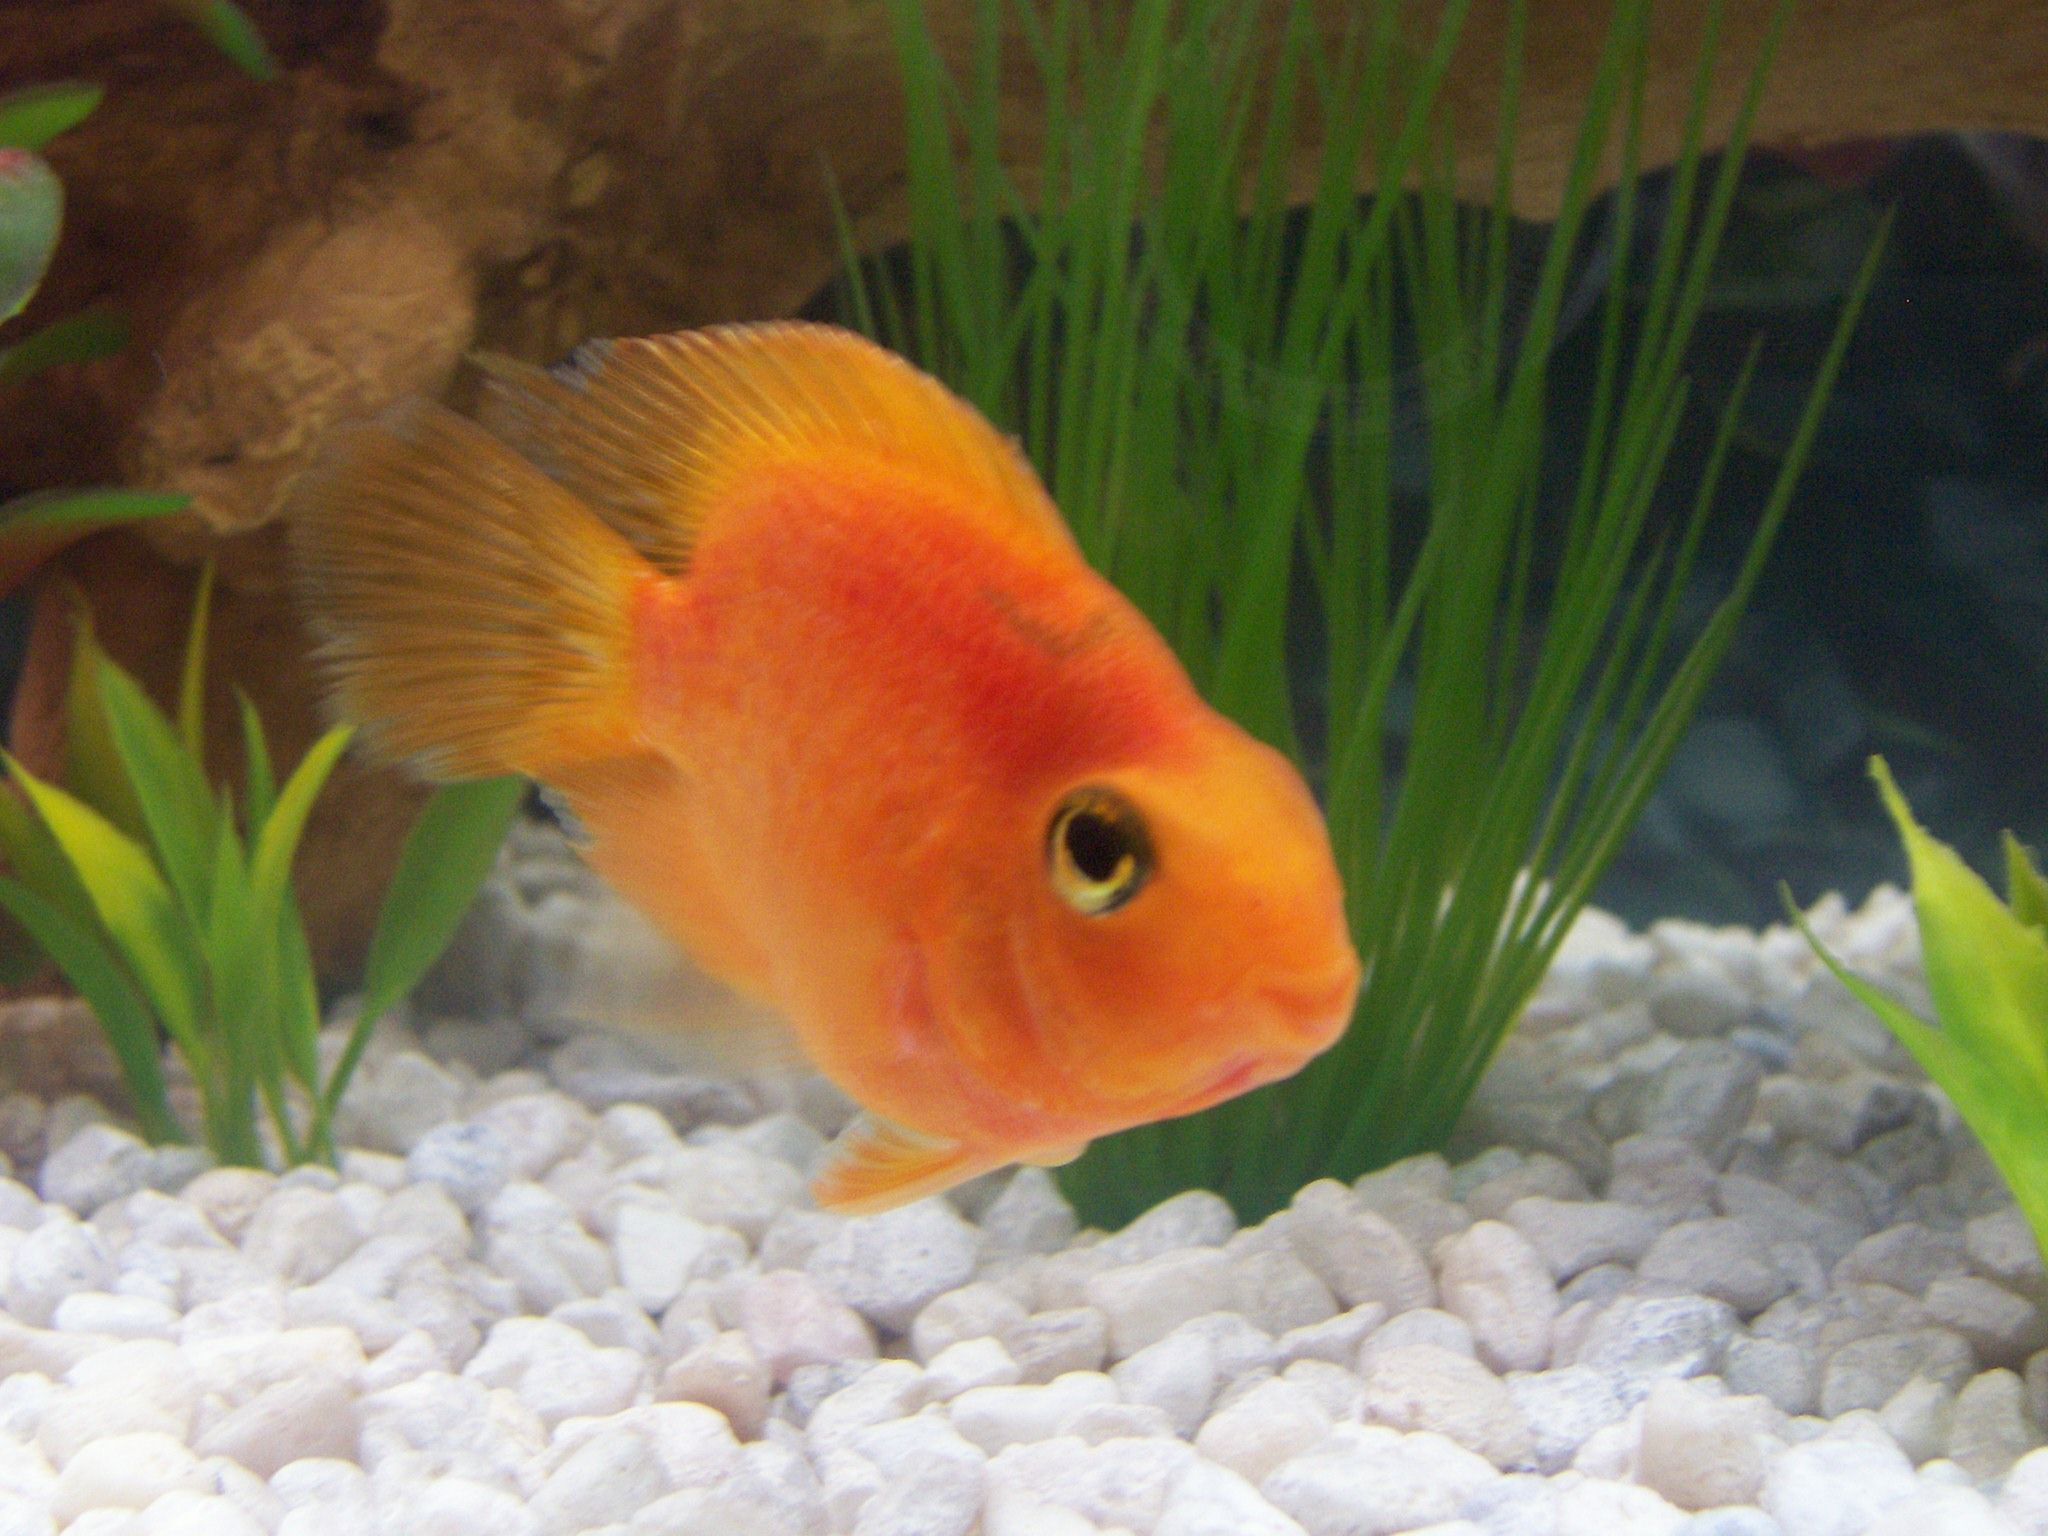 Fish aquarium olx delhi - Freshwater Aquarium Fish With Personality Our Little Freshwater Aquarium Has A Few Of These Blood